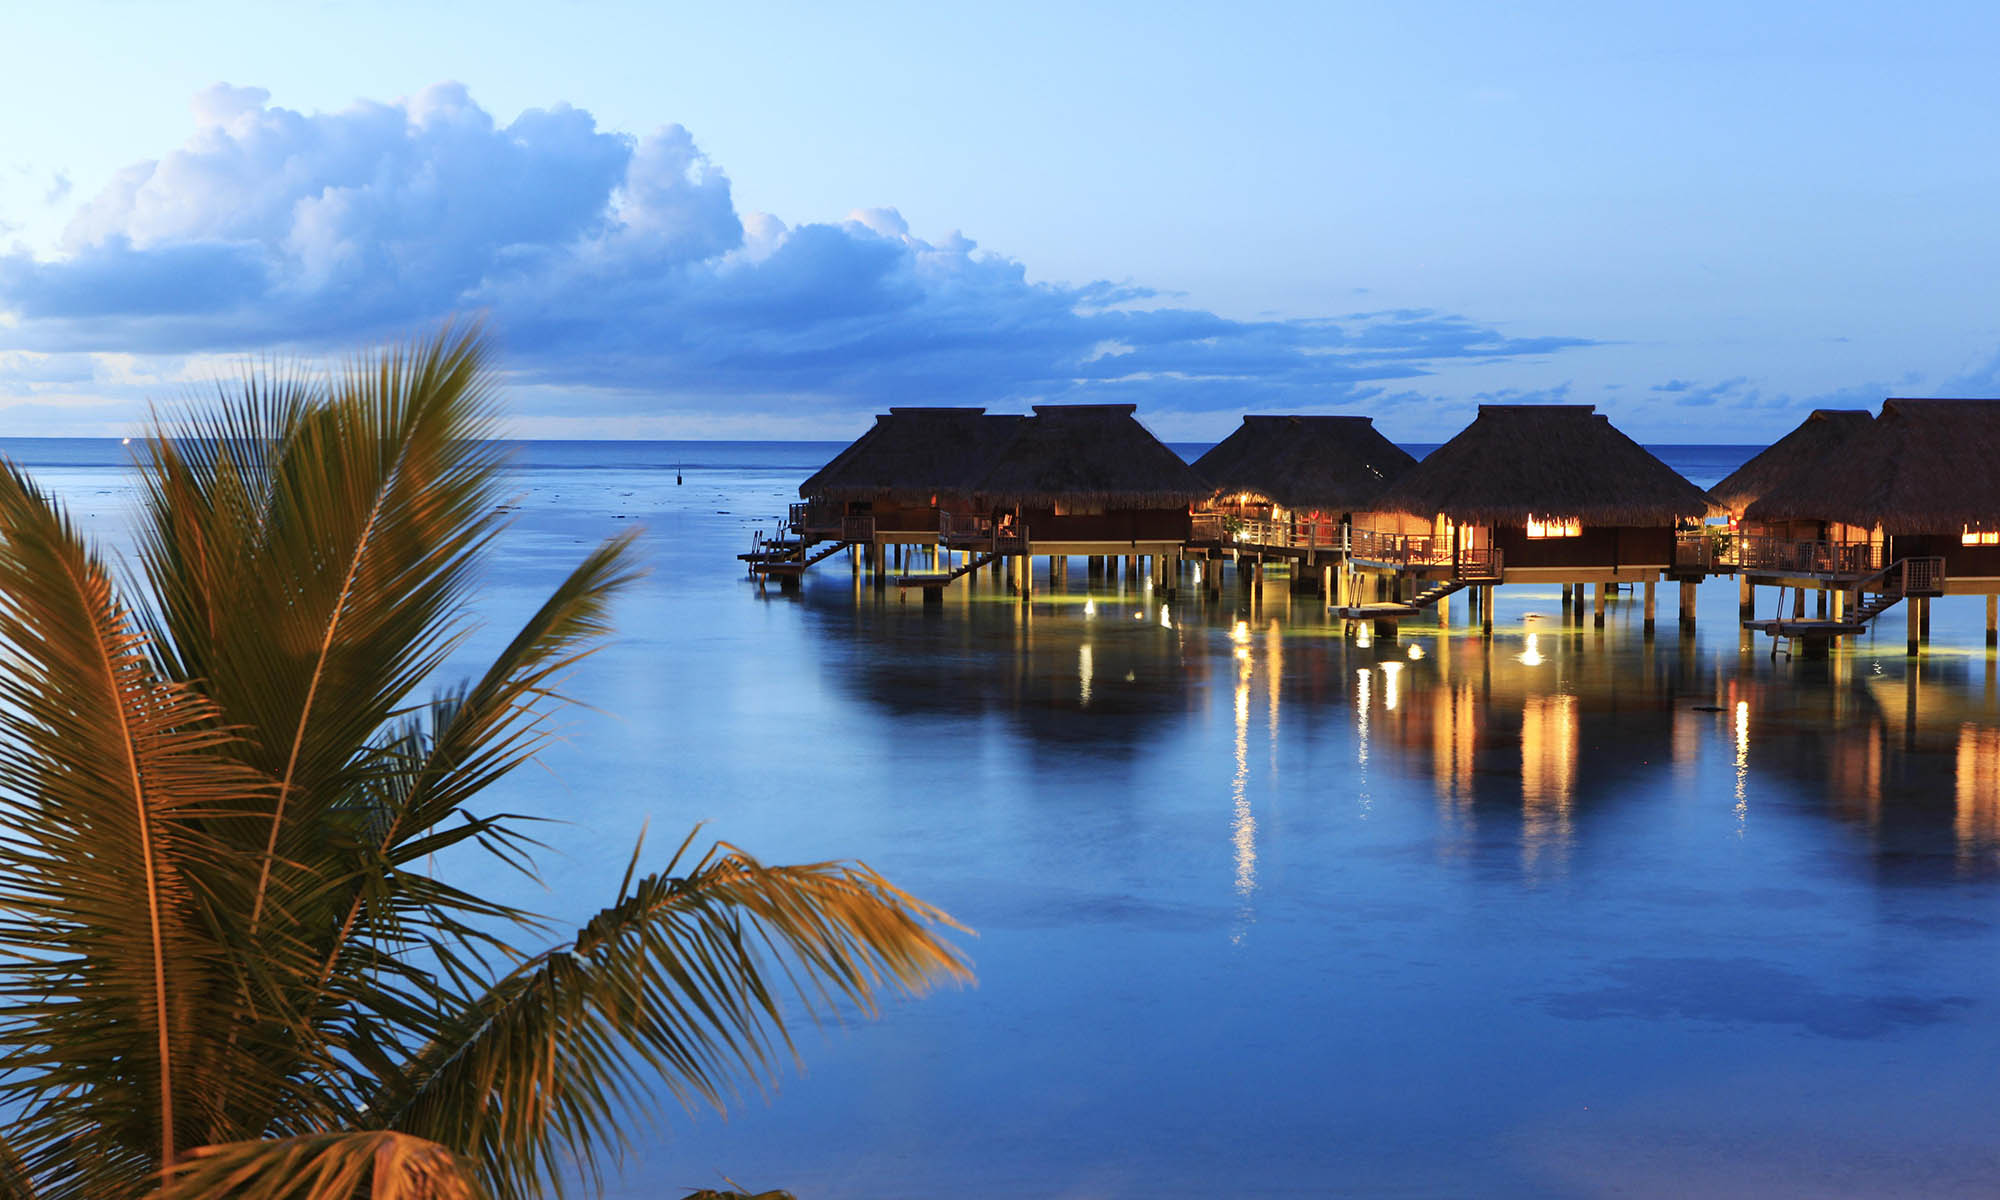 Hilton Moorea, Overwater Bungalows at Dusk